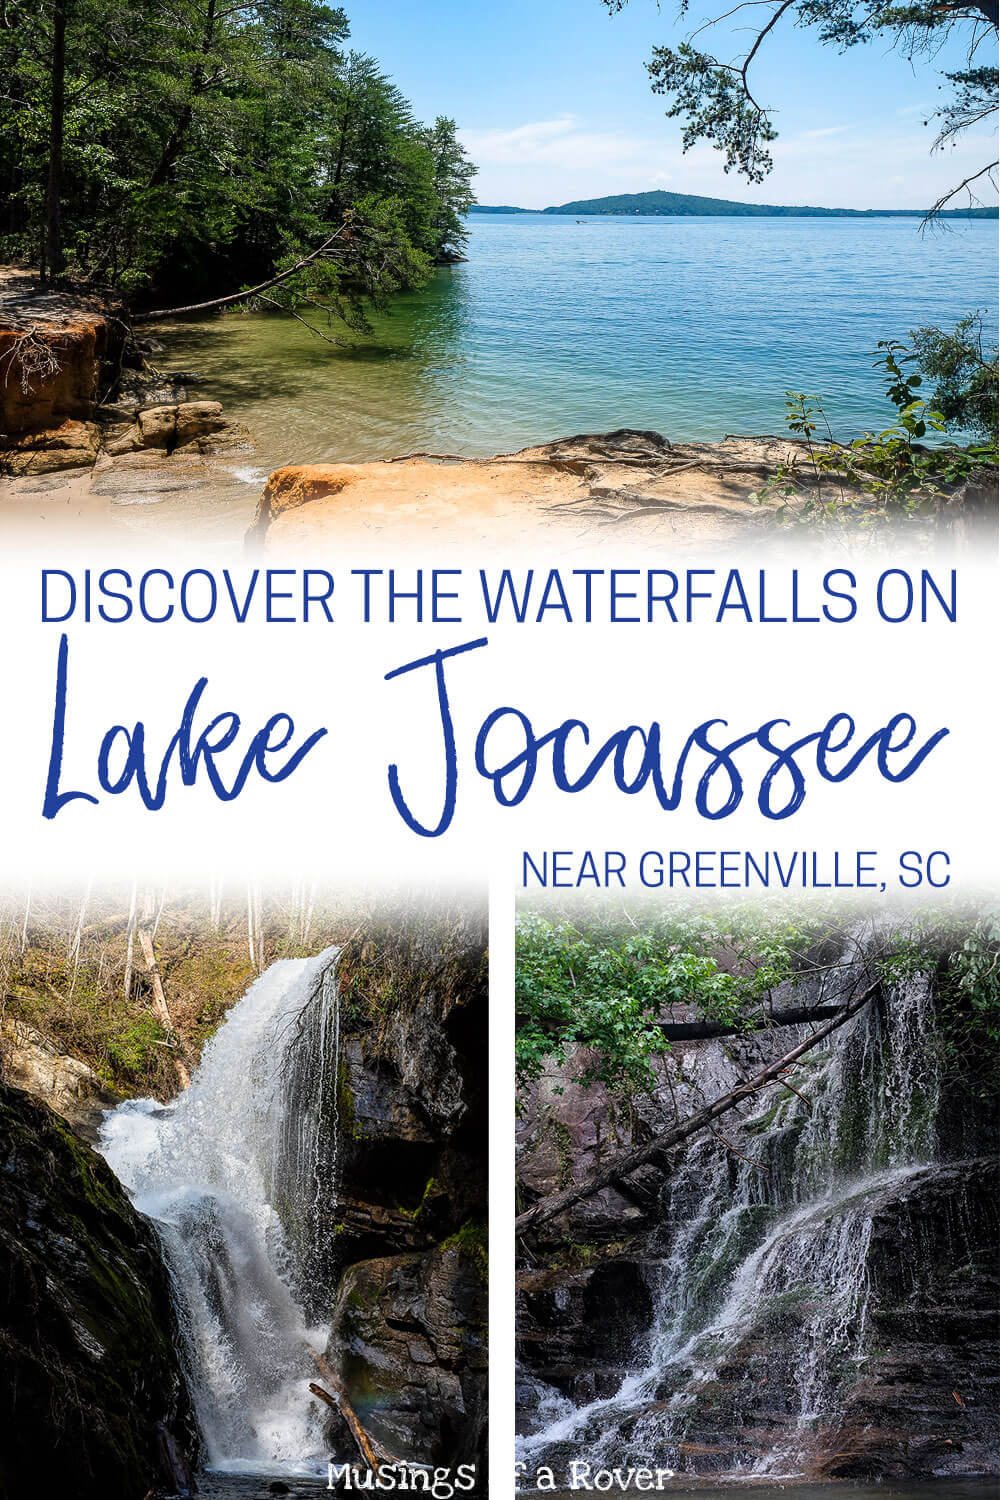 Exploring the Lake Jocassee waterfalls is a perfect way to spend your day on the lake. Discover the Laurel Falls, Wright Creek Falls, and more! Visiting Lake Jocassee is one of my favorite things to do in Greenville, SC!